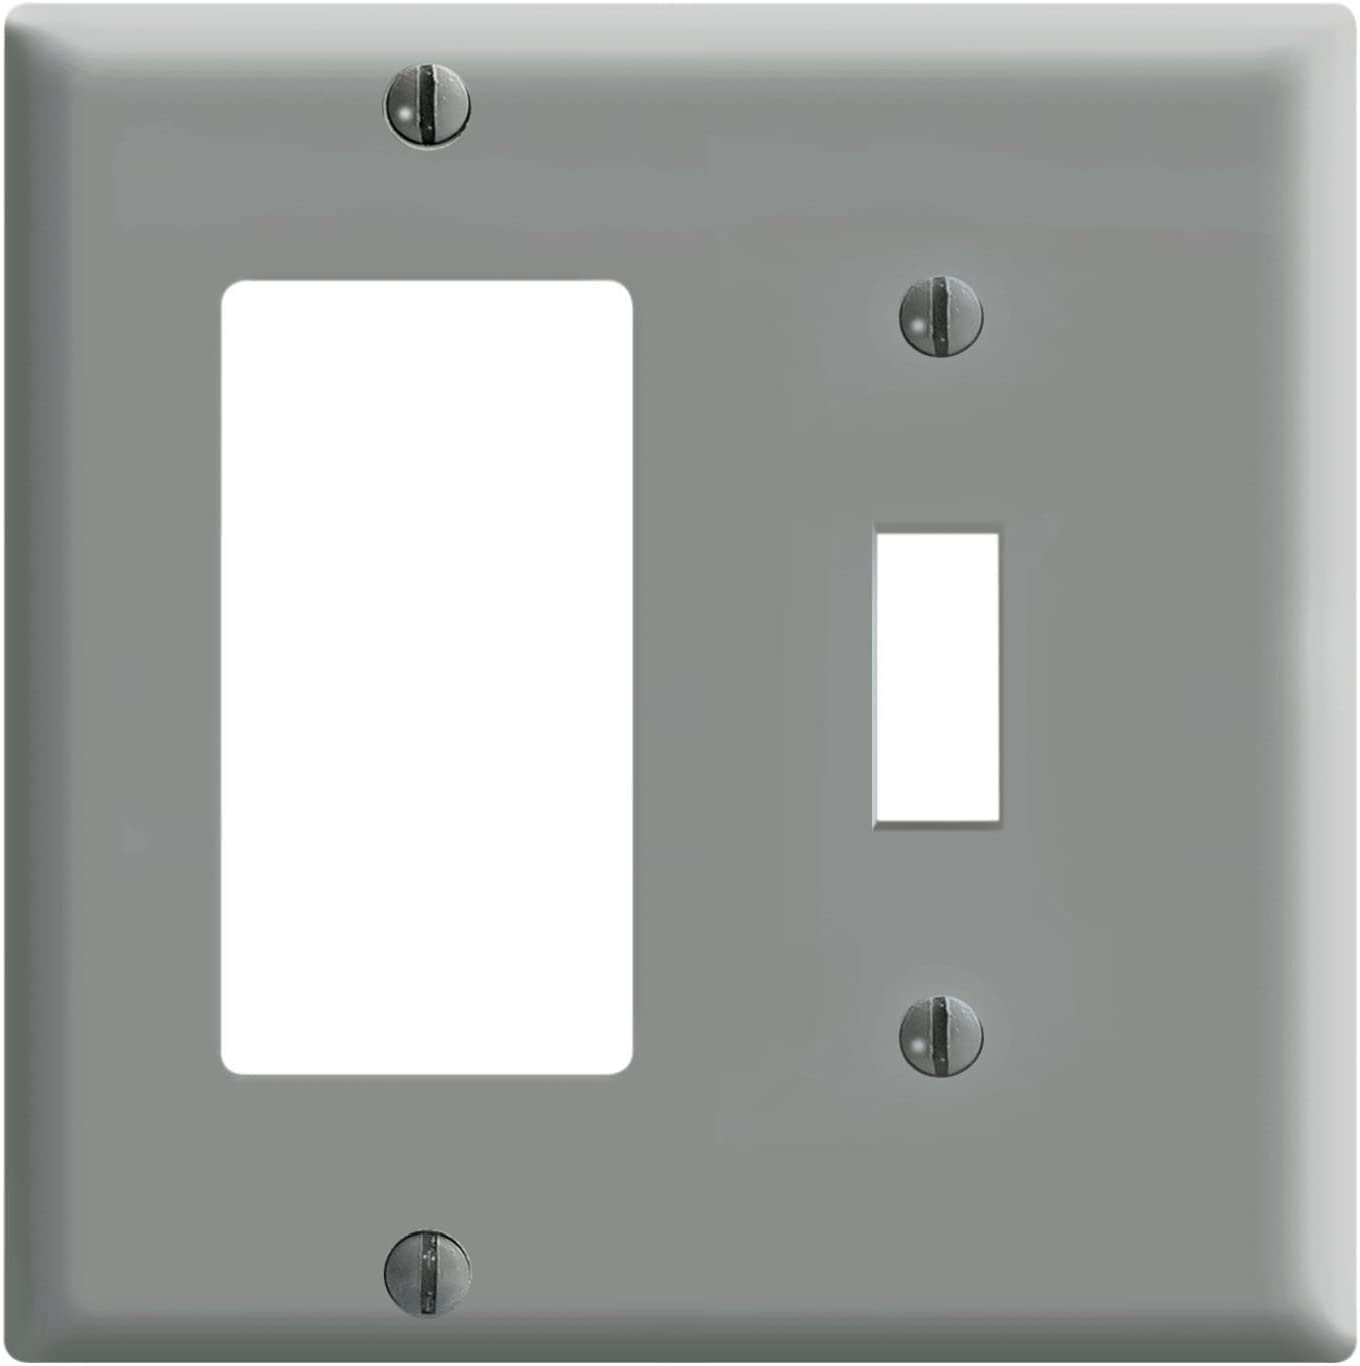 Leviton 80405-GY 2-Gang 1-Toggle 1-Decora/GFCI Device Combination Wallplate, Standard Size, Thermoset, Device Mount, Gray